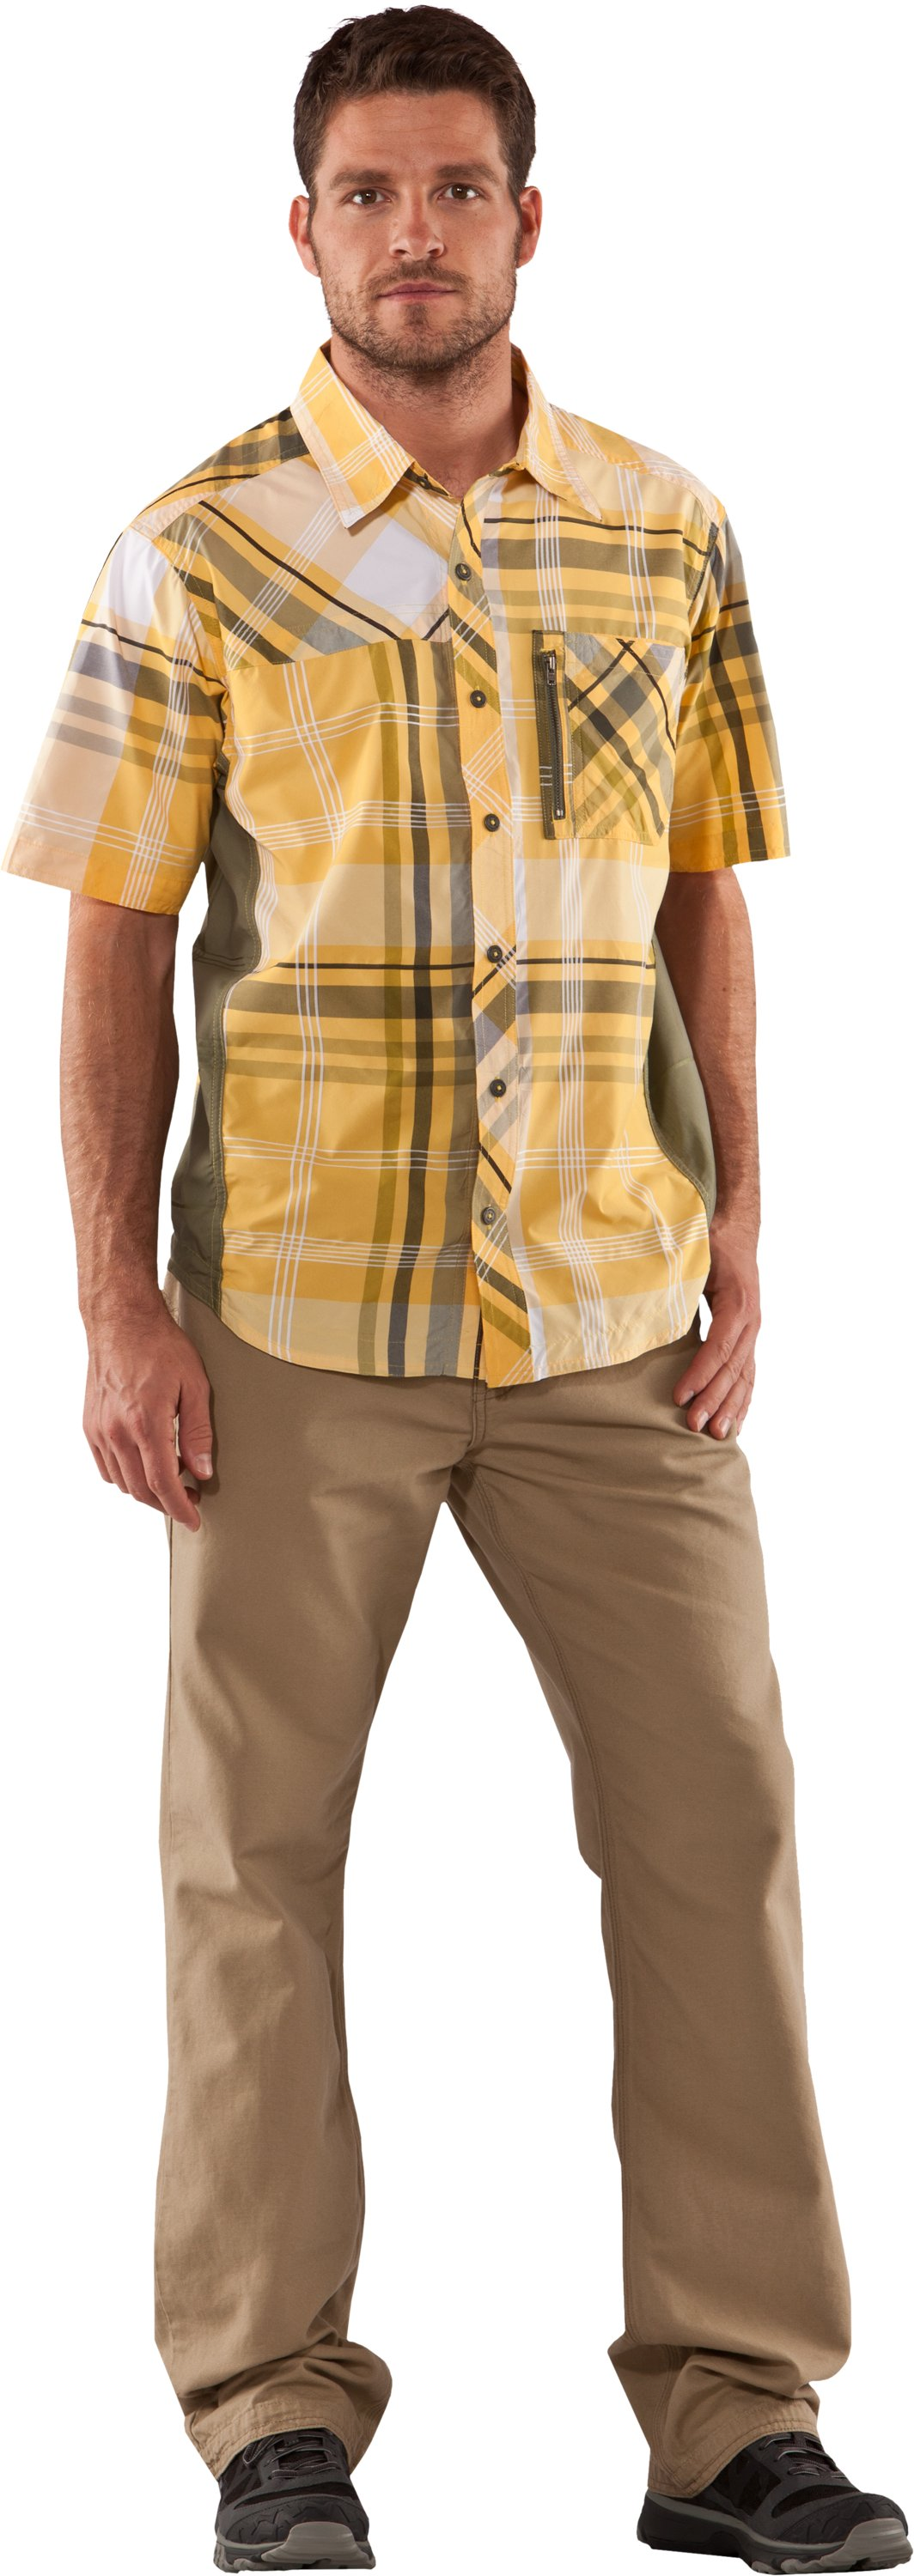 Men's Big Plaid Woven Short Sleeve Shirt, Sunspark, Front